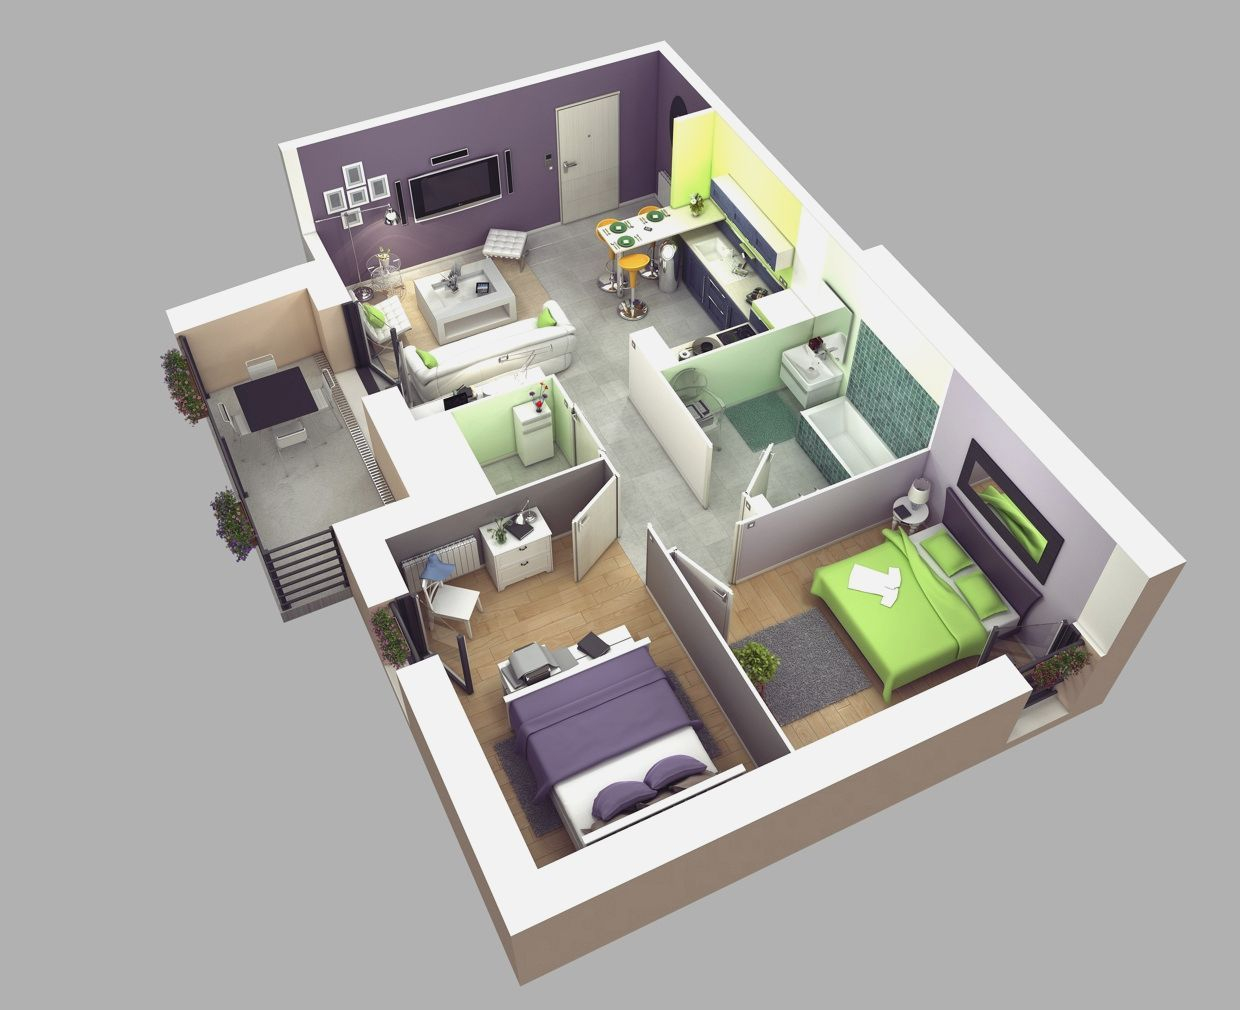 3 Bedroom House Floor Plan Design 3d